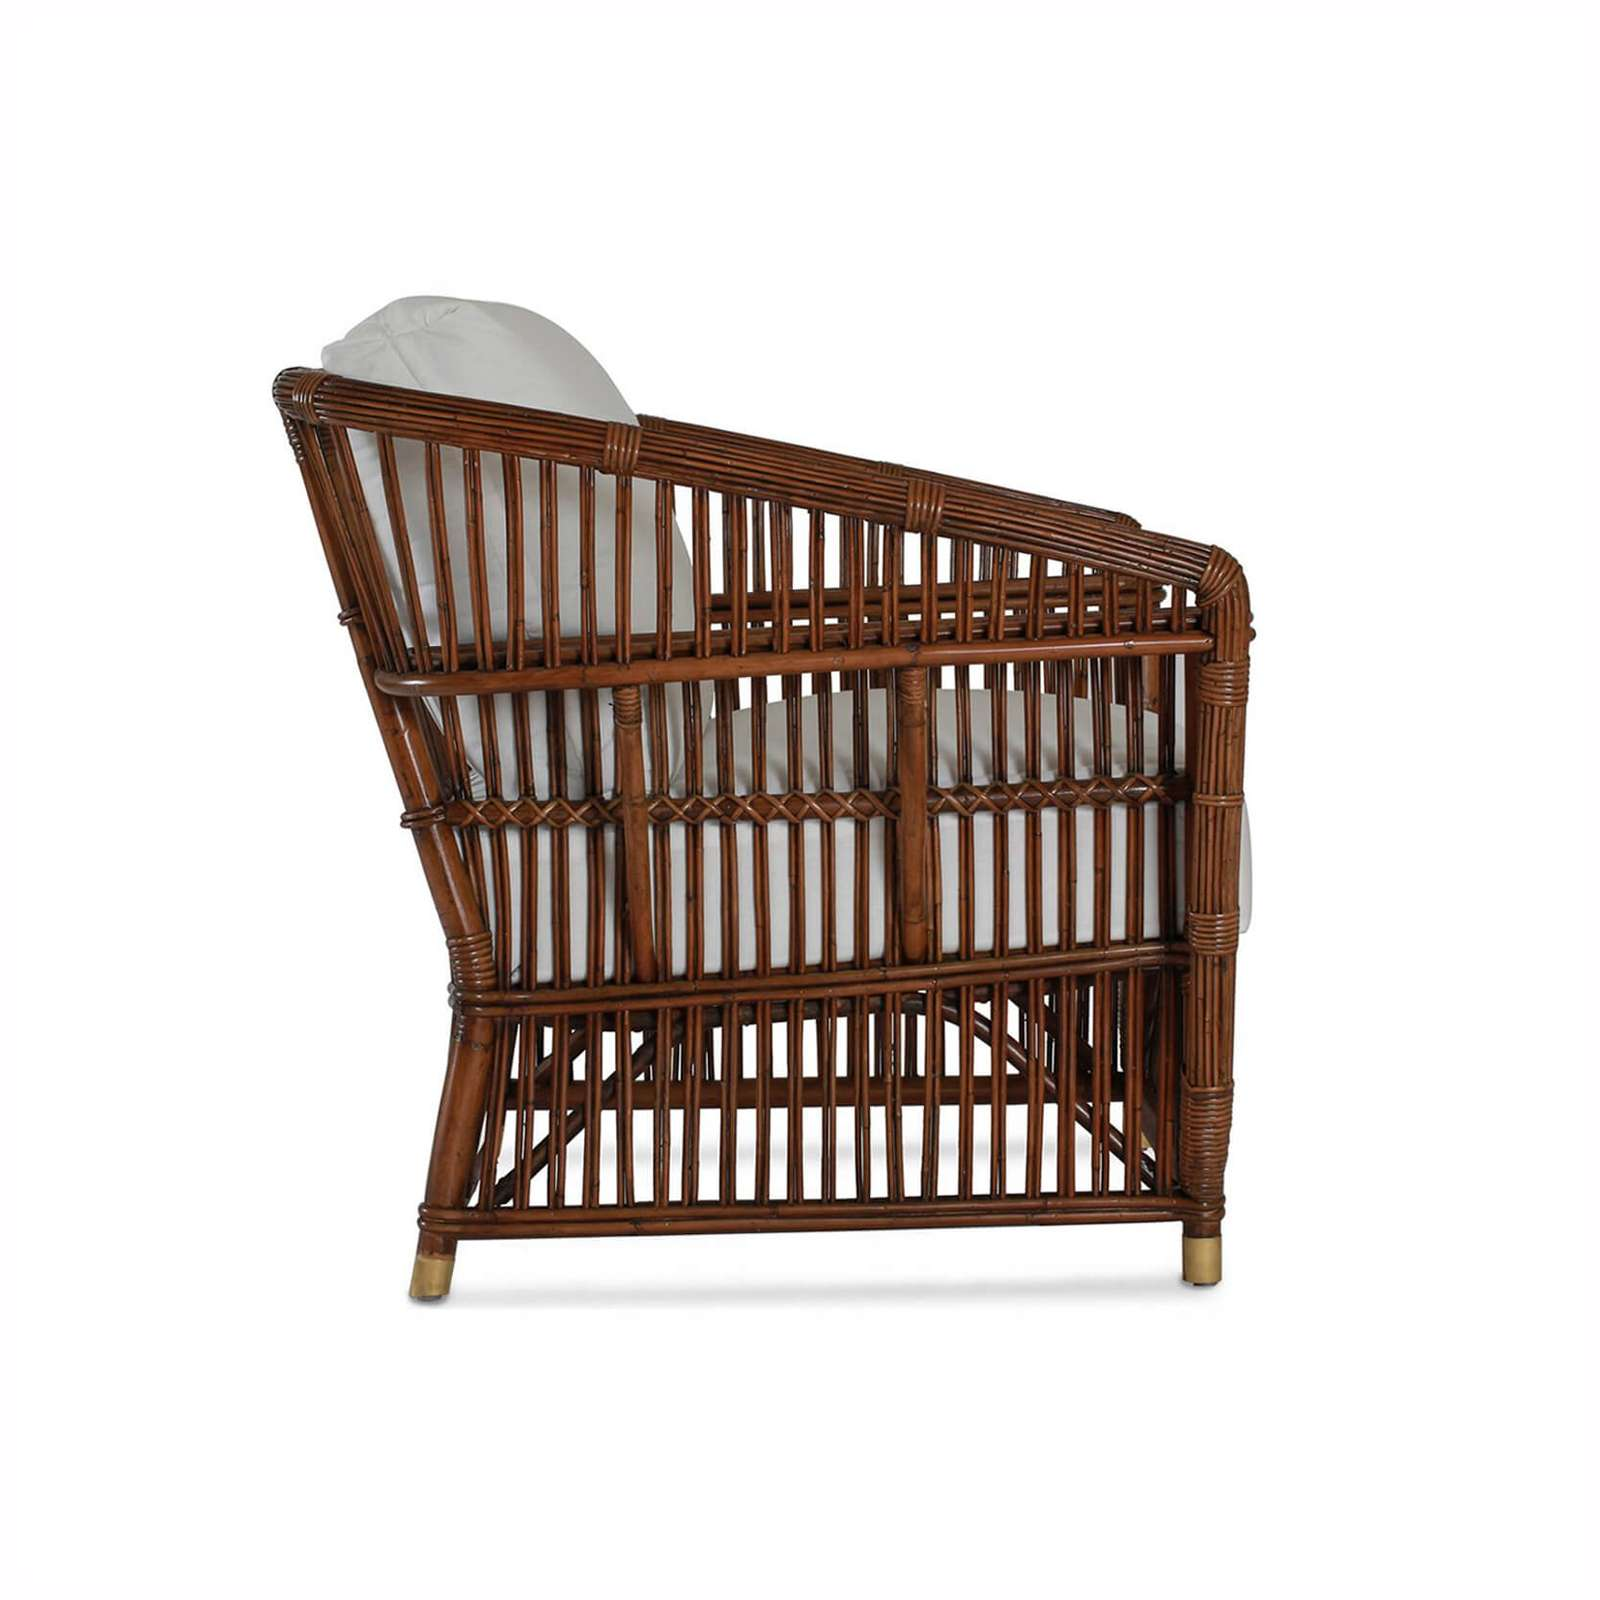 PARROT CAY CLUB CHAIR 02 - STUART MEMBERY HOME COLLECTION